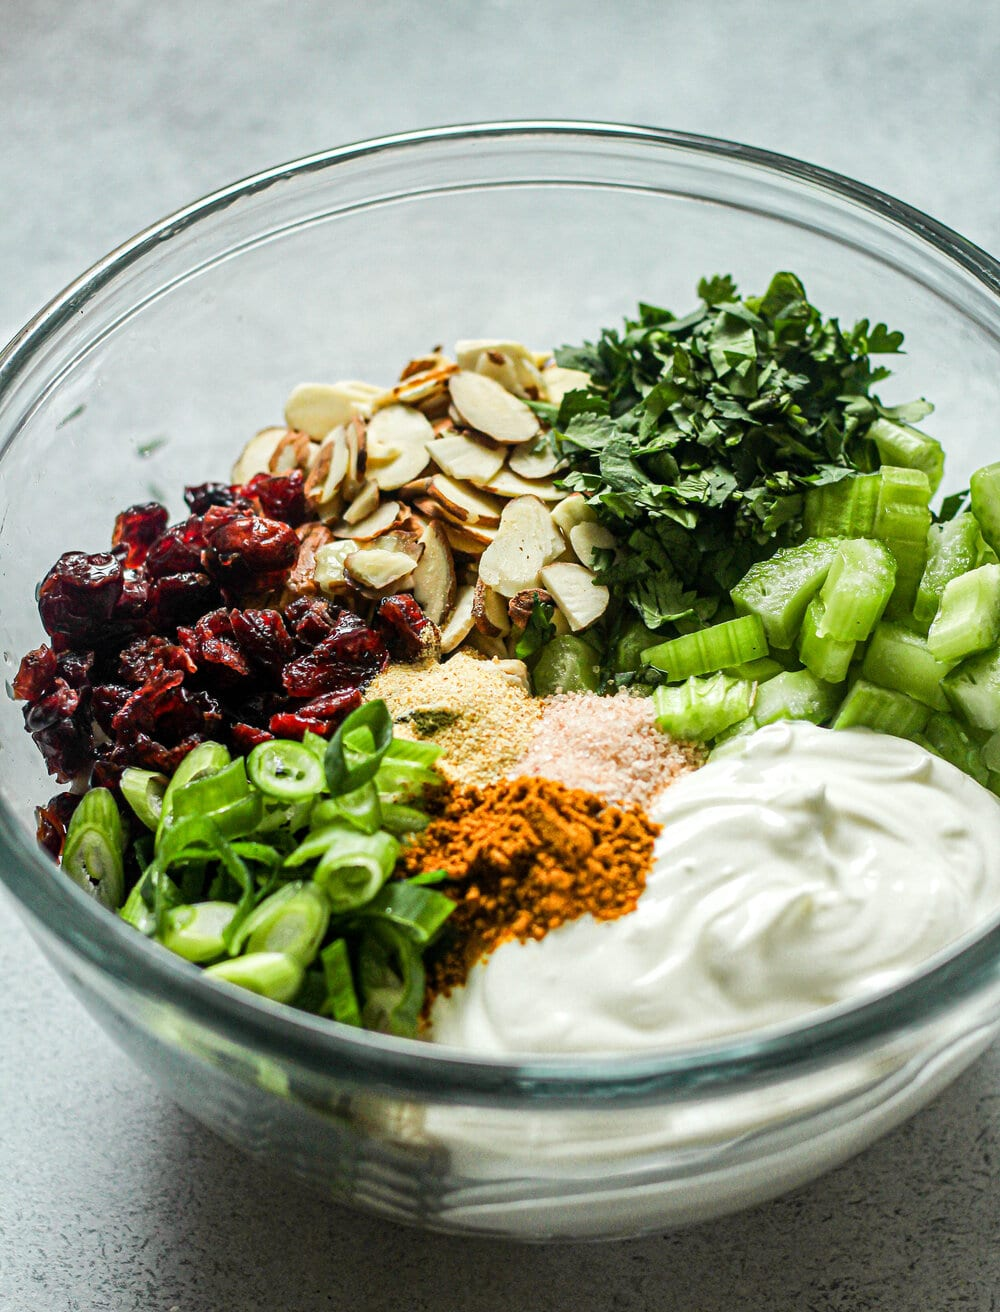 Curry Chicken Salad ingredients in glass mixing bowl